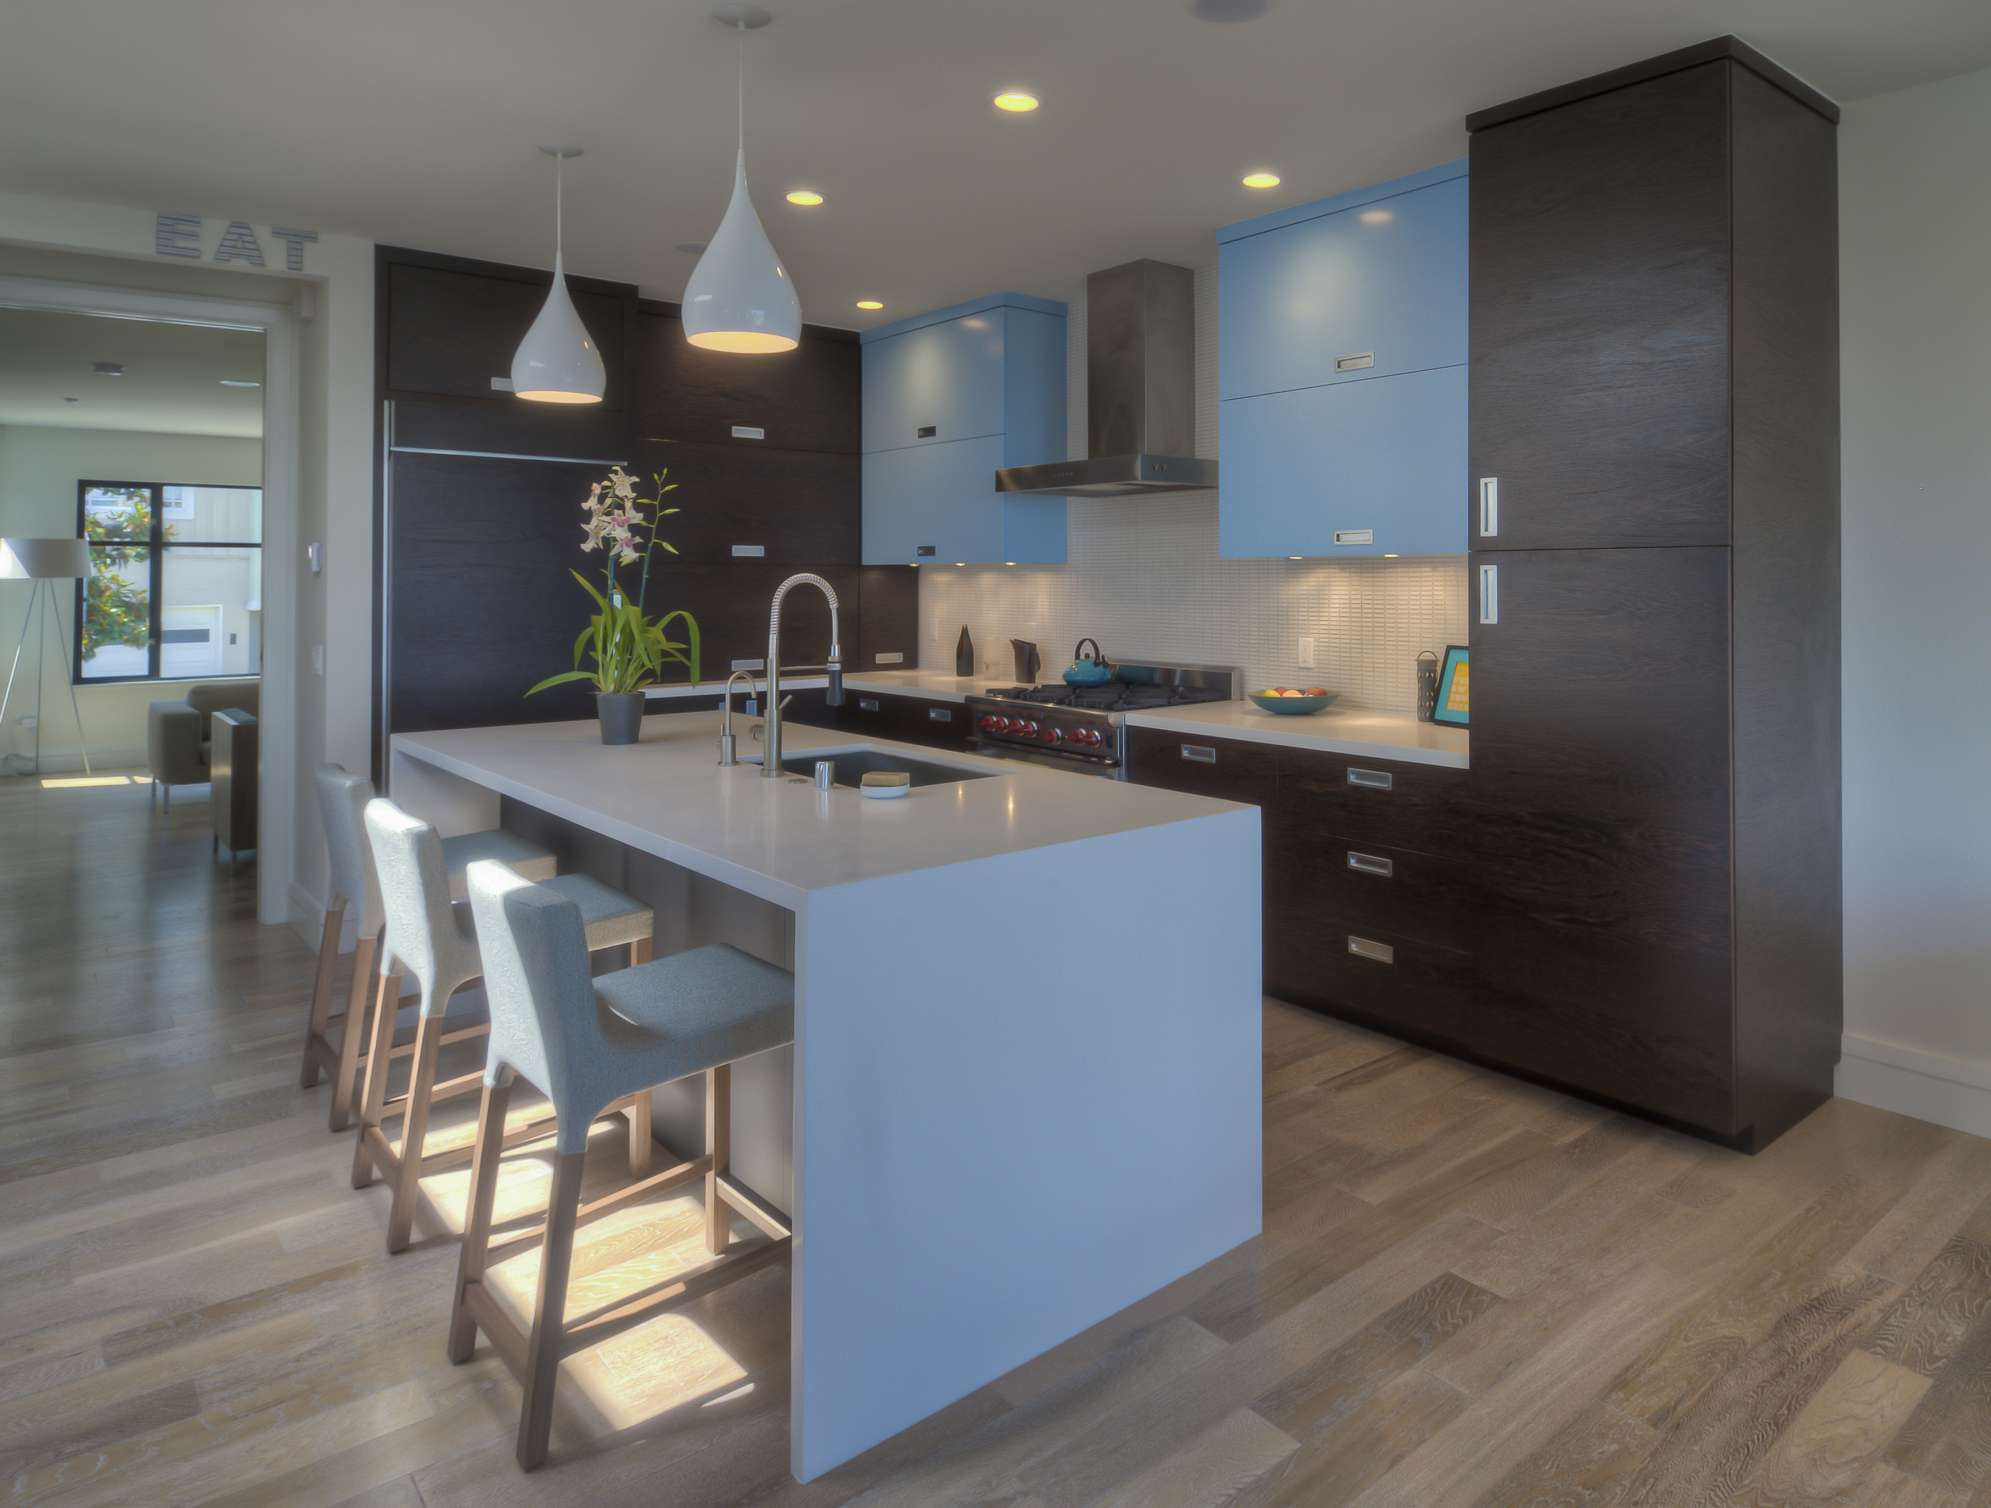 8 Fabulous Two-Toned Kitchens on ideas for gray paint, ideas for old silver, ideas for gray bathroom, ideas for corner kitchen cabinet, ideas for gray sofas, ideas for gray carpeting, ideas for gray living room,